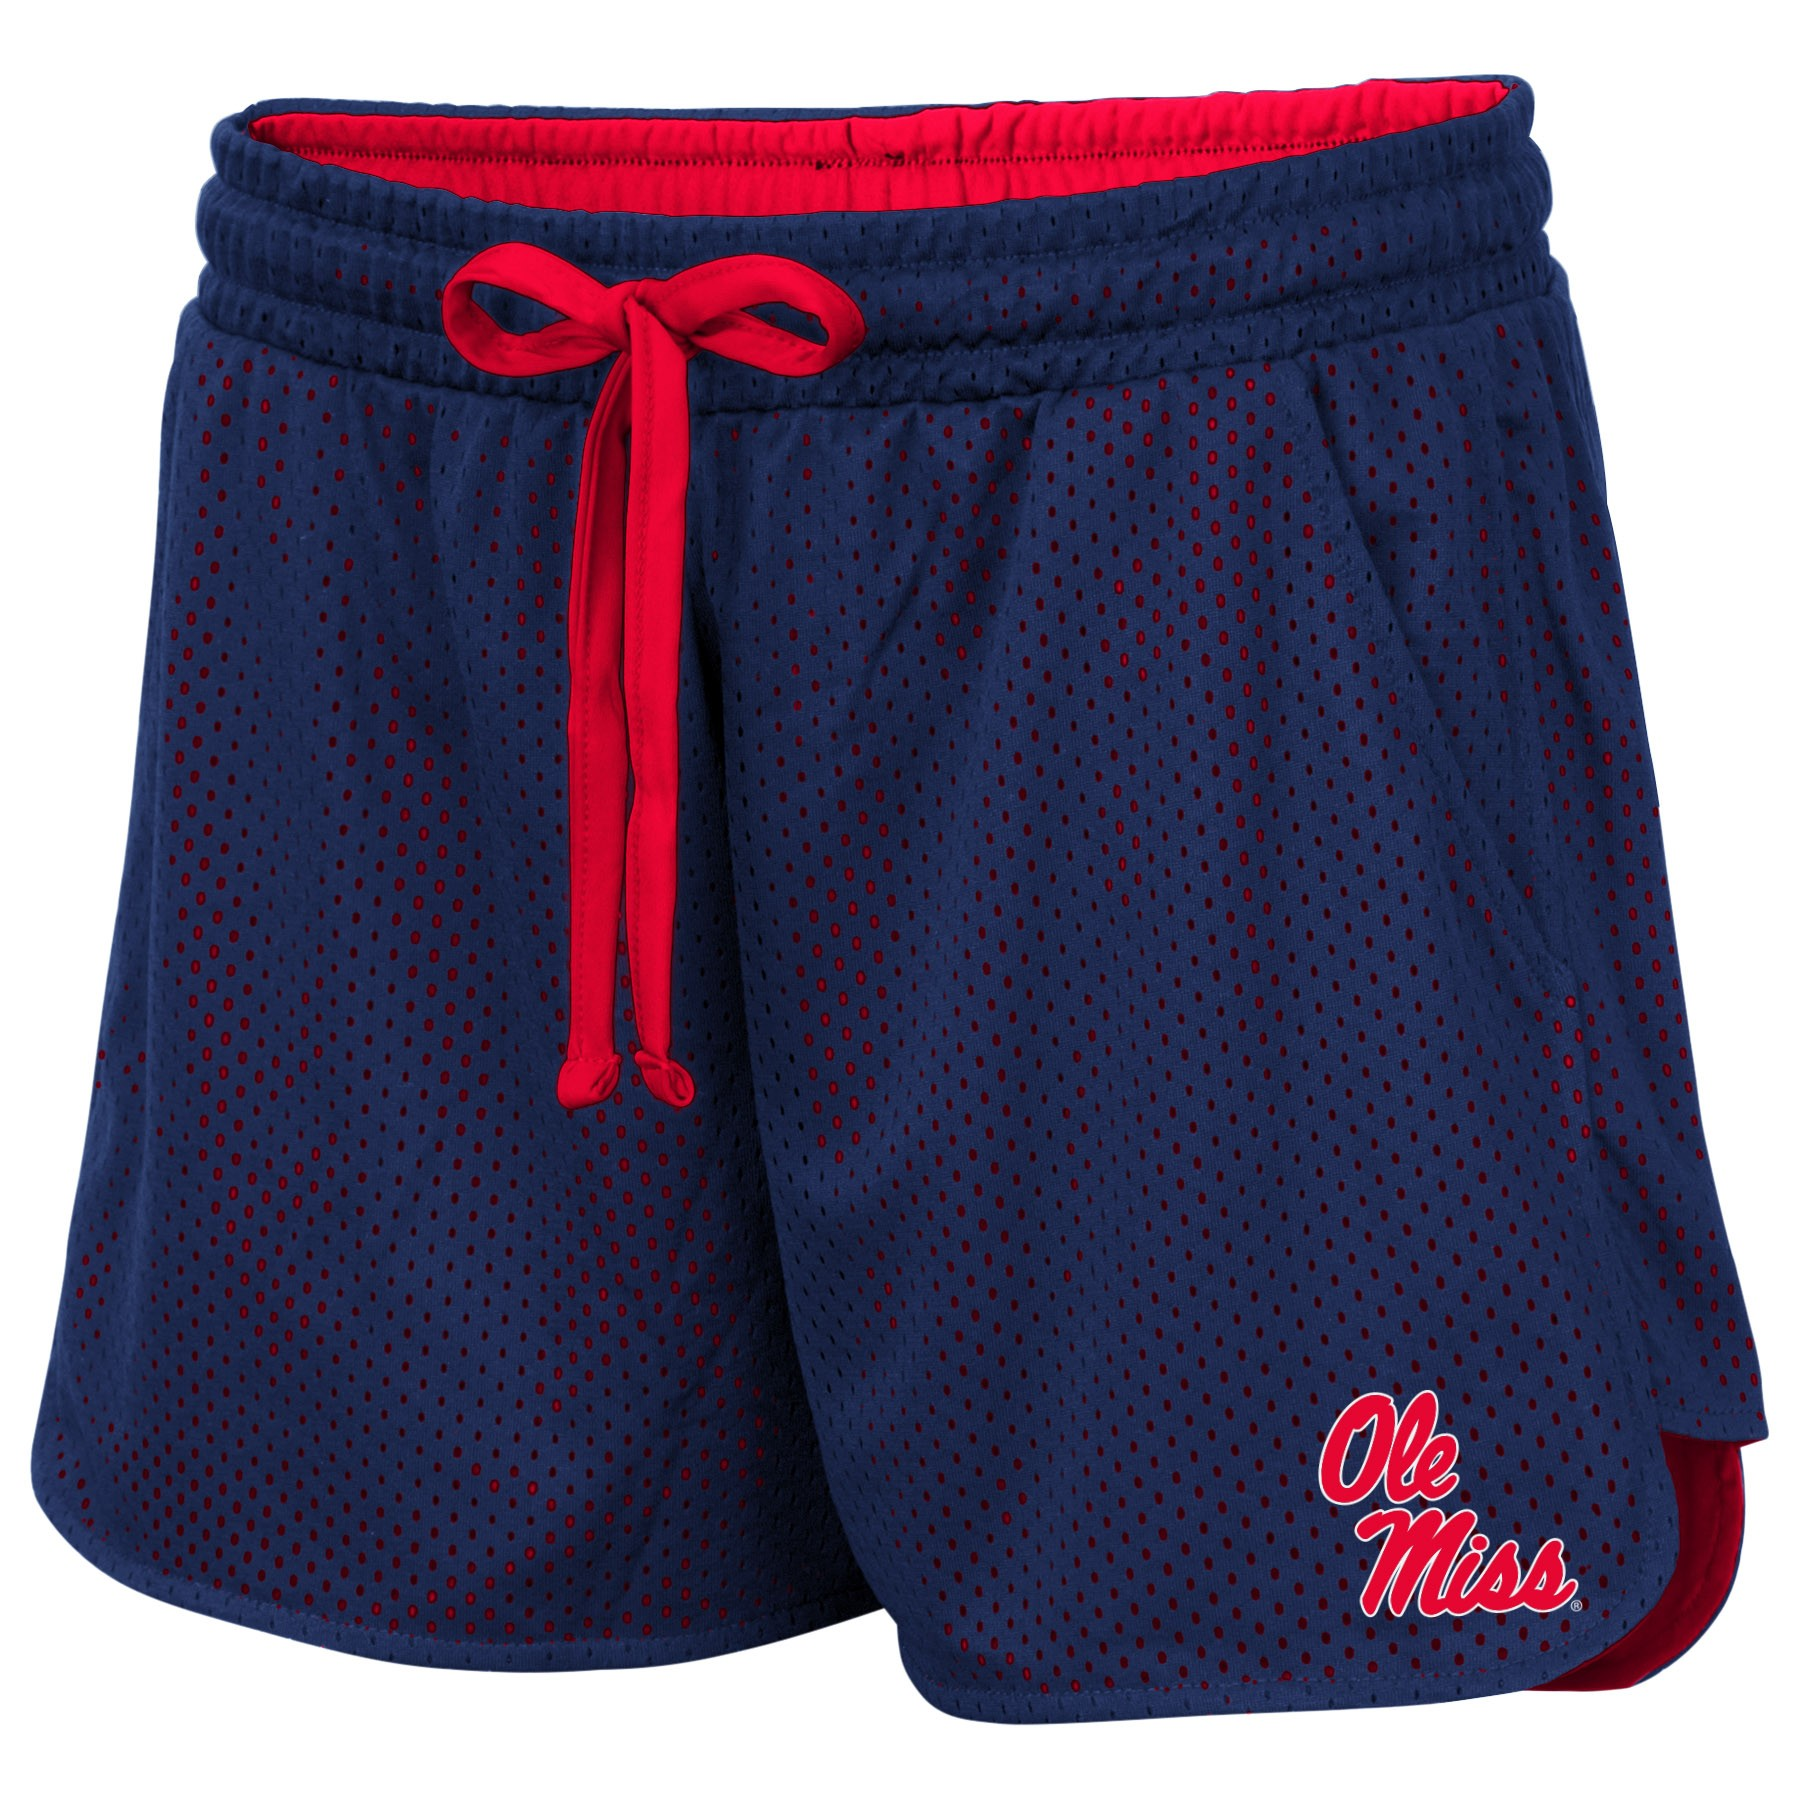 Colosseum Womens Navy and Red Mesh Athletic Shorts